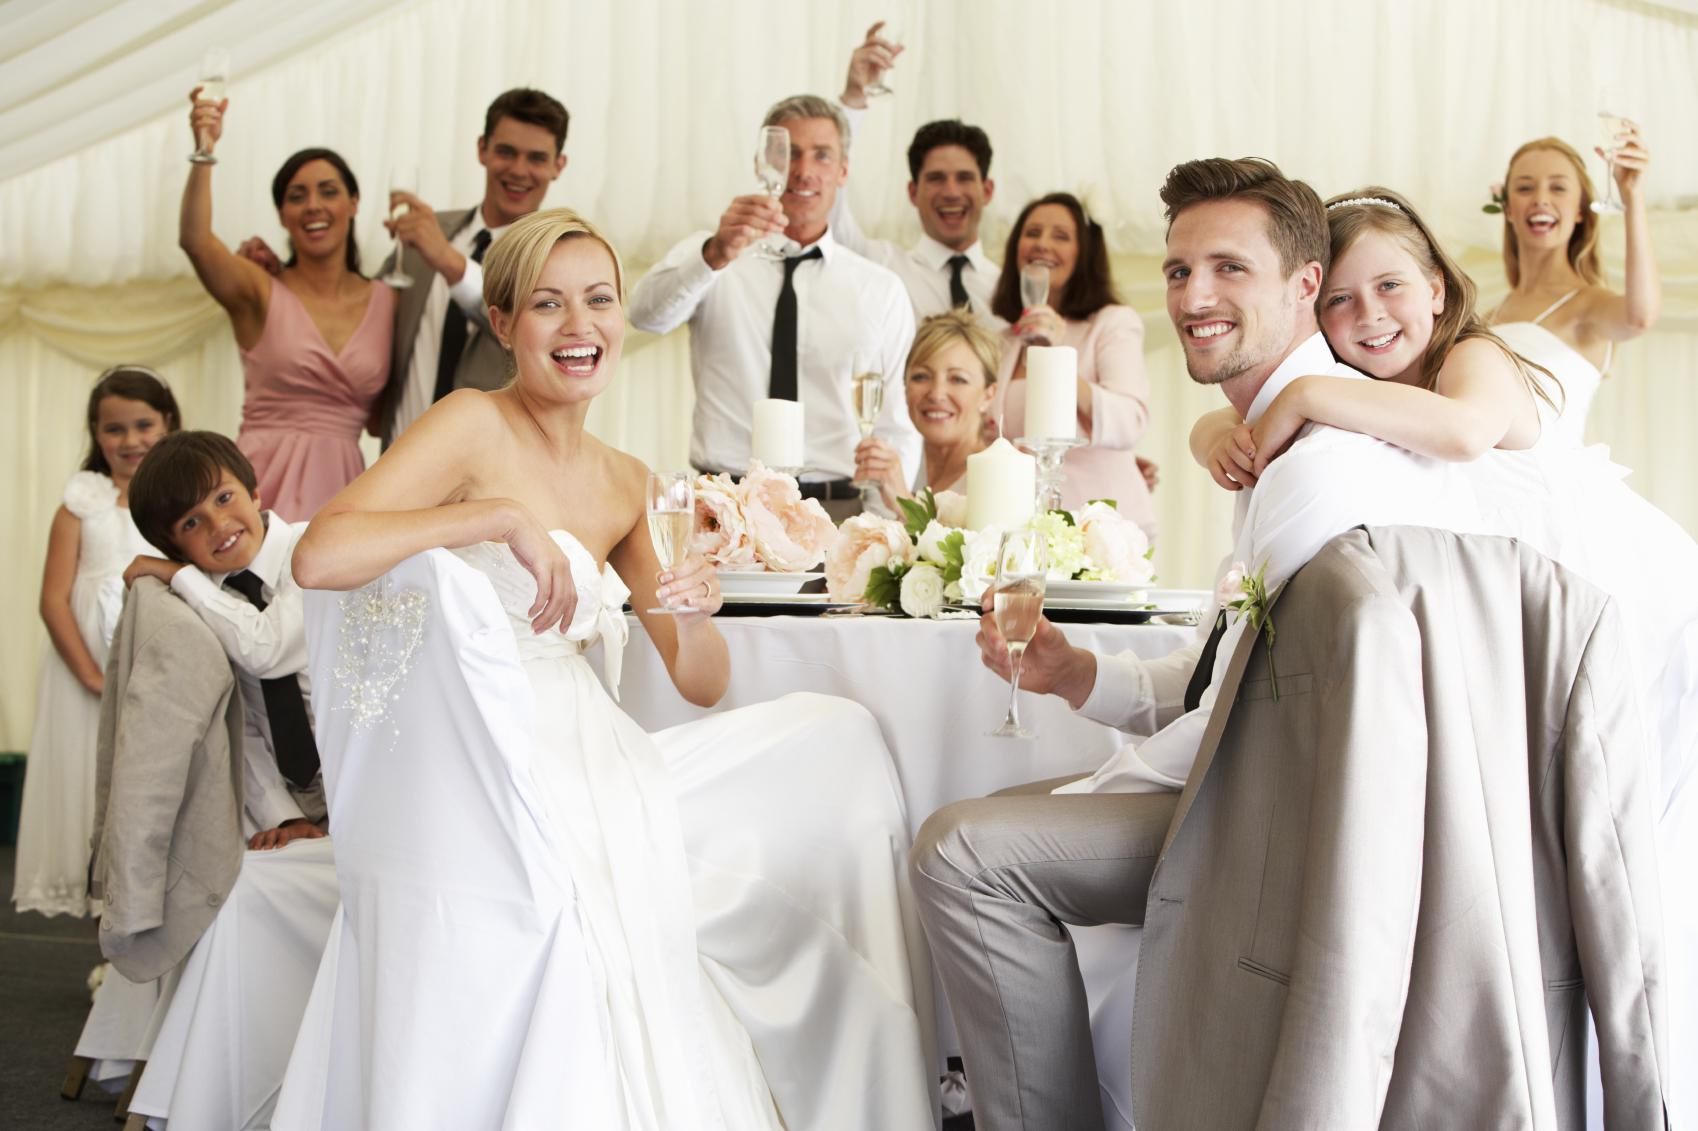 Unforgettable Wedding Receptions: 3 Ideas Everyone Will Love on coldstonesouthflorida.com